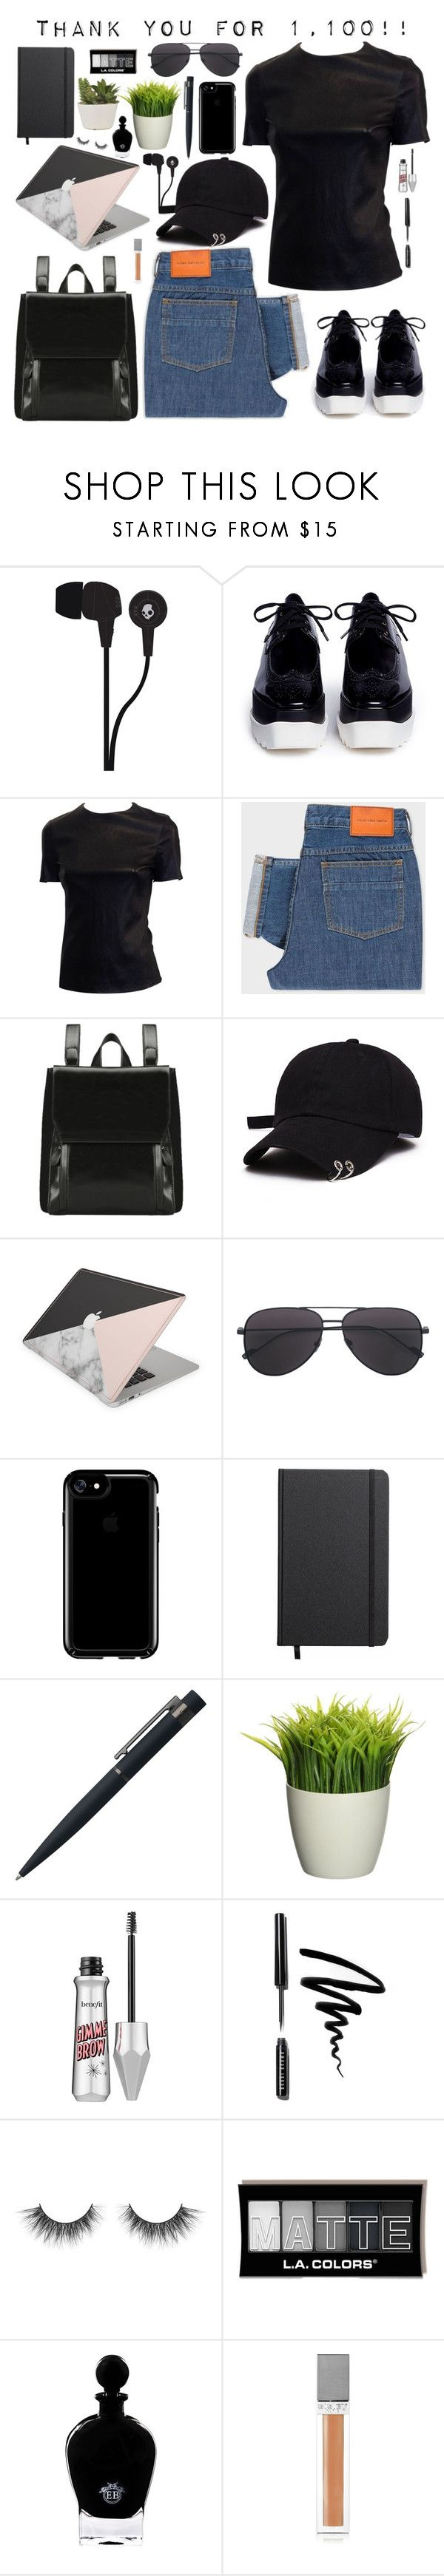 """Thank you!"" by bill-board ❤ liked on Polyvore featuring Skullcandy, STELLA McCARTNEY, PS Paul Smith, Speck, Shinola, John Lewis, Bobbi Brown Cosmetics, EB Florals and Sisley"